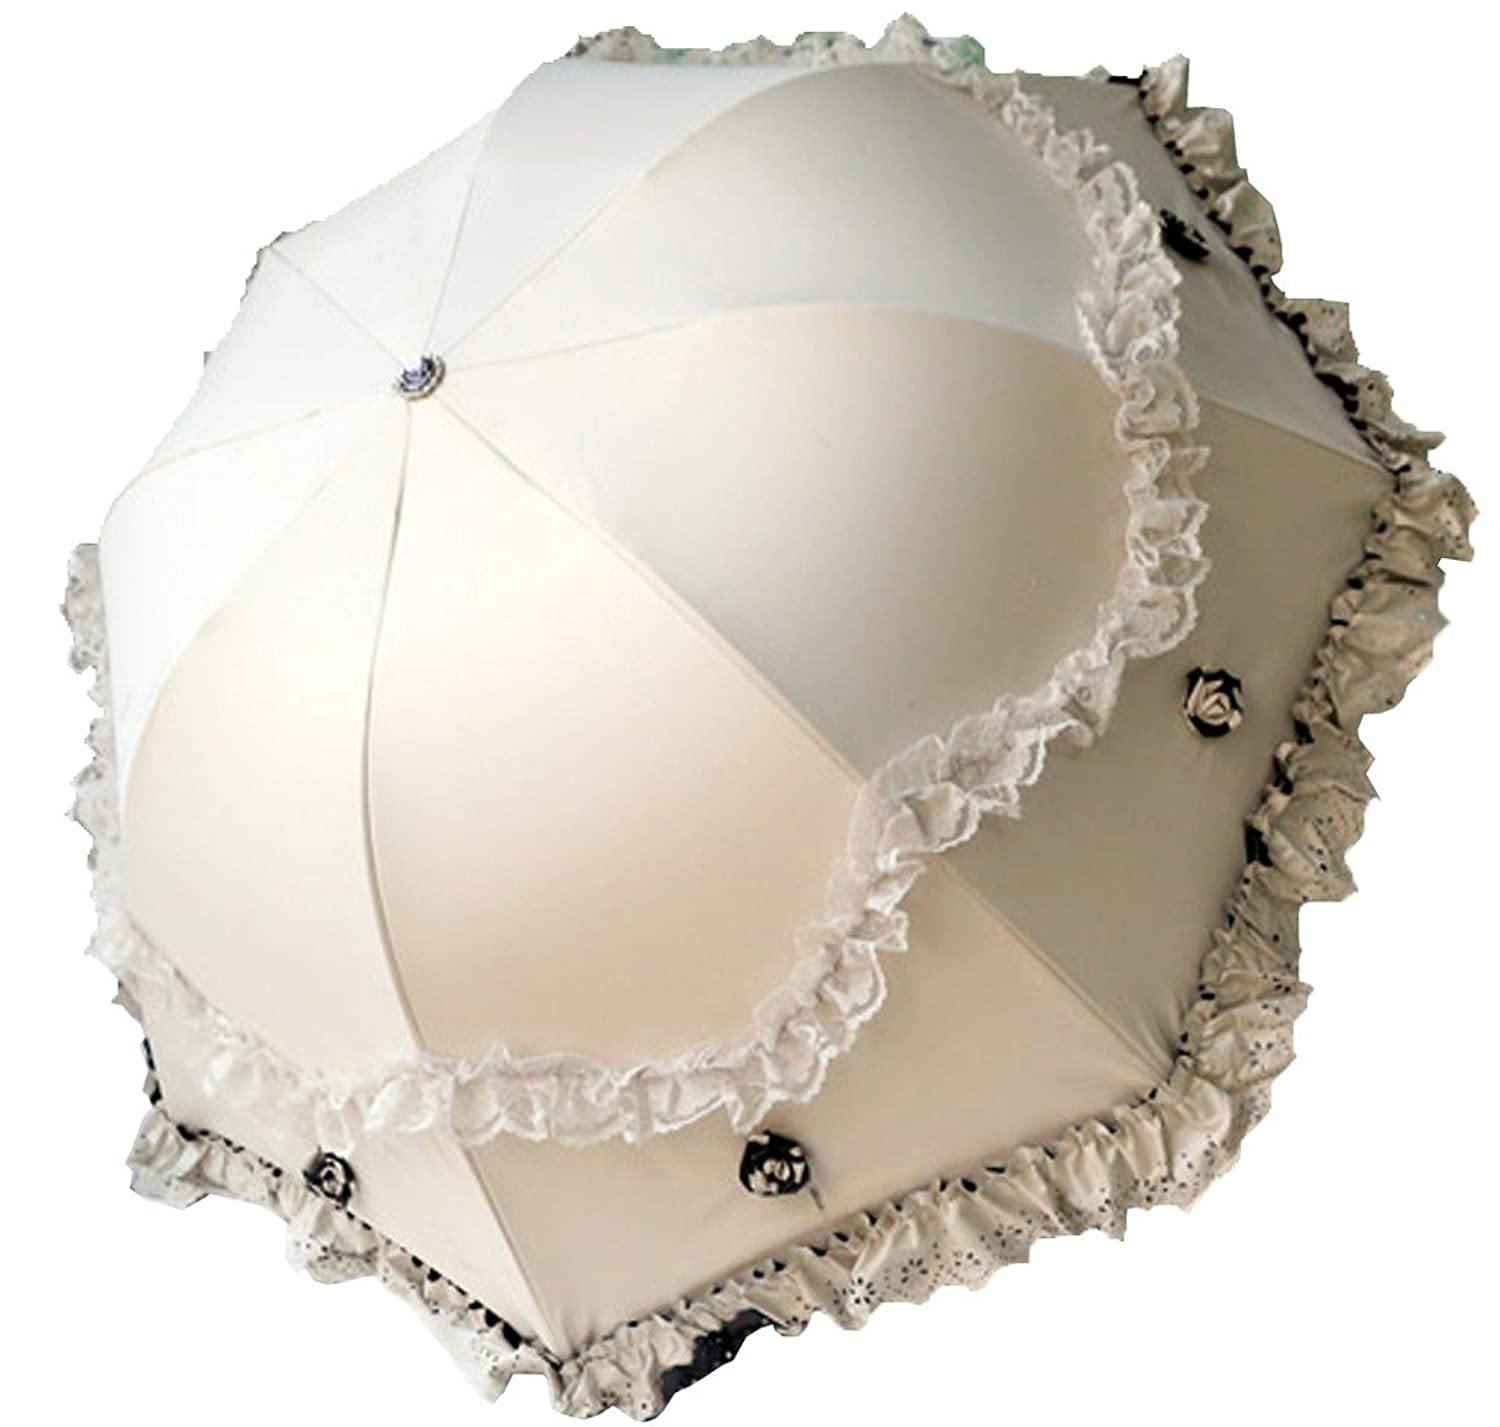 Vintage Inspired Wedding Dress | Vintage Style Wedding Dresses Supergirl Women Parasol Travel Compact Lace Sunshade Anti-UV Windproof Rain Umbrella $28.99 AT vintagedancer.com